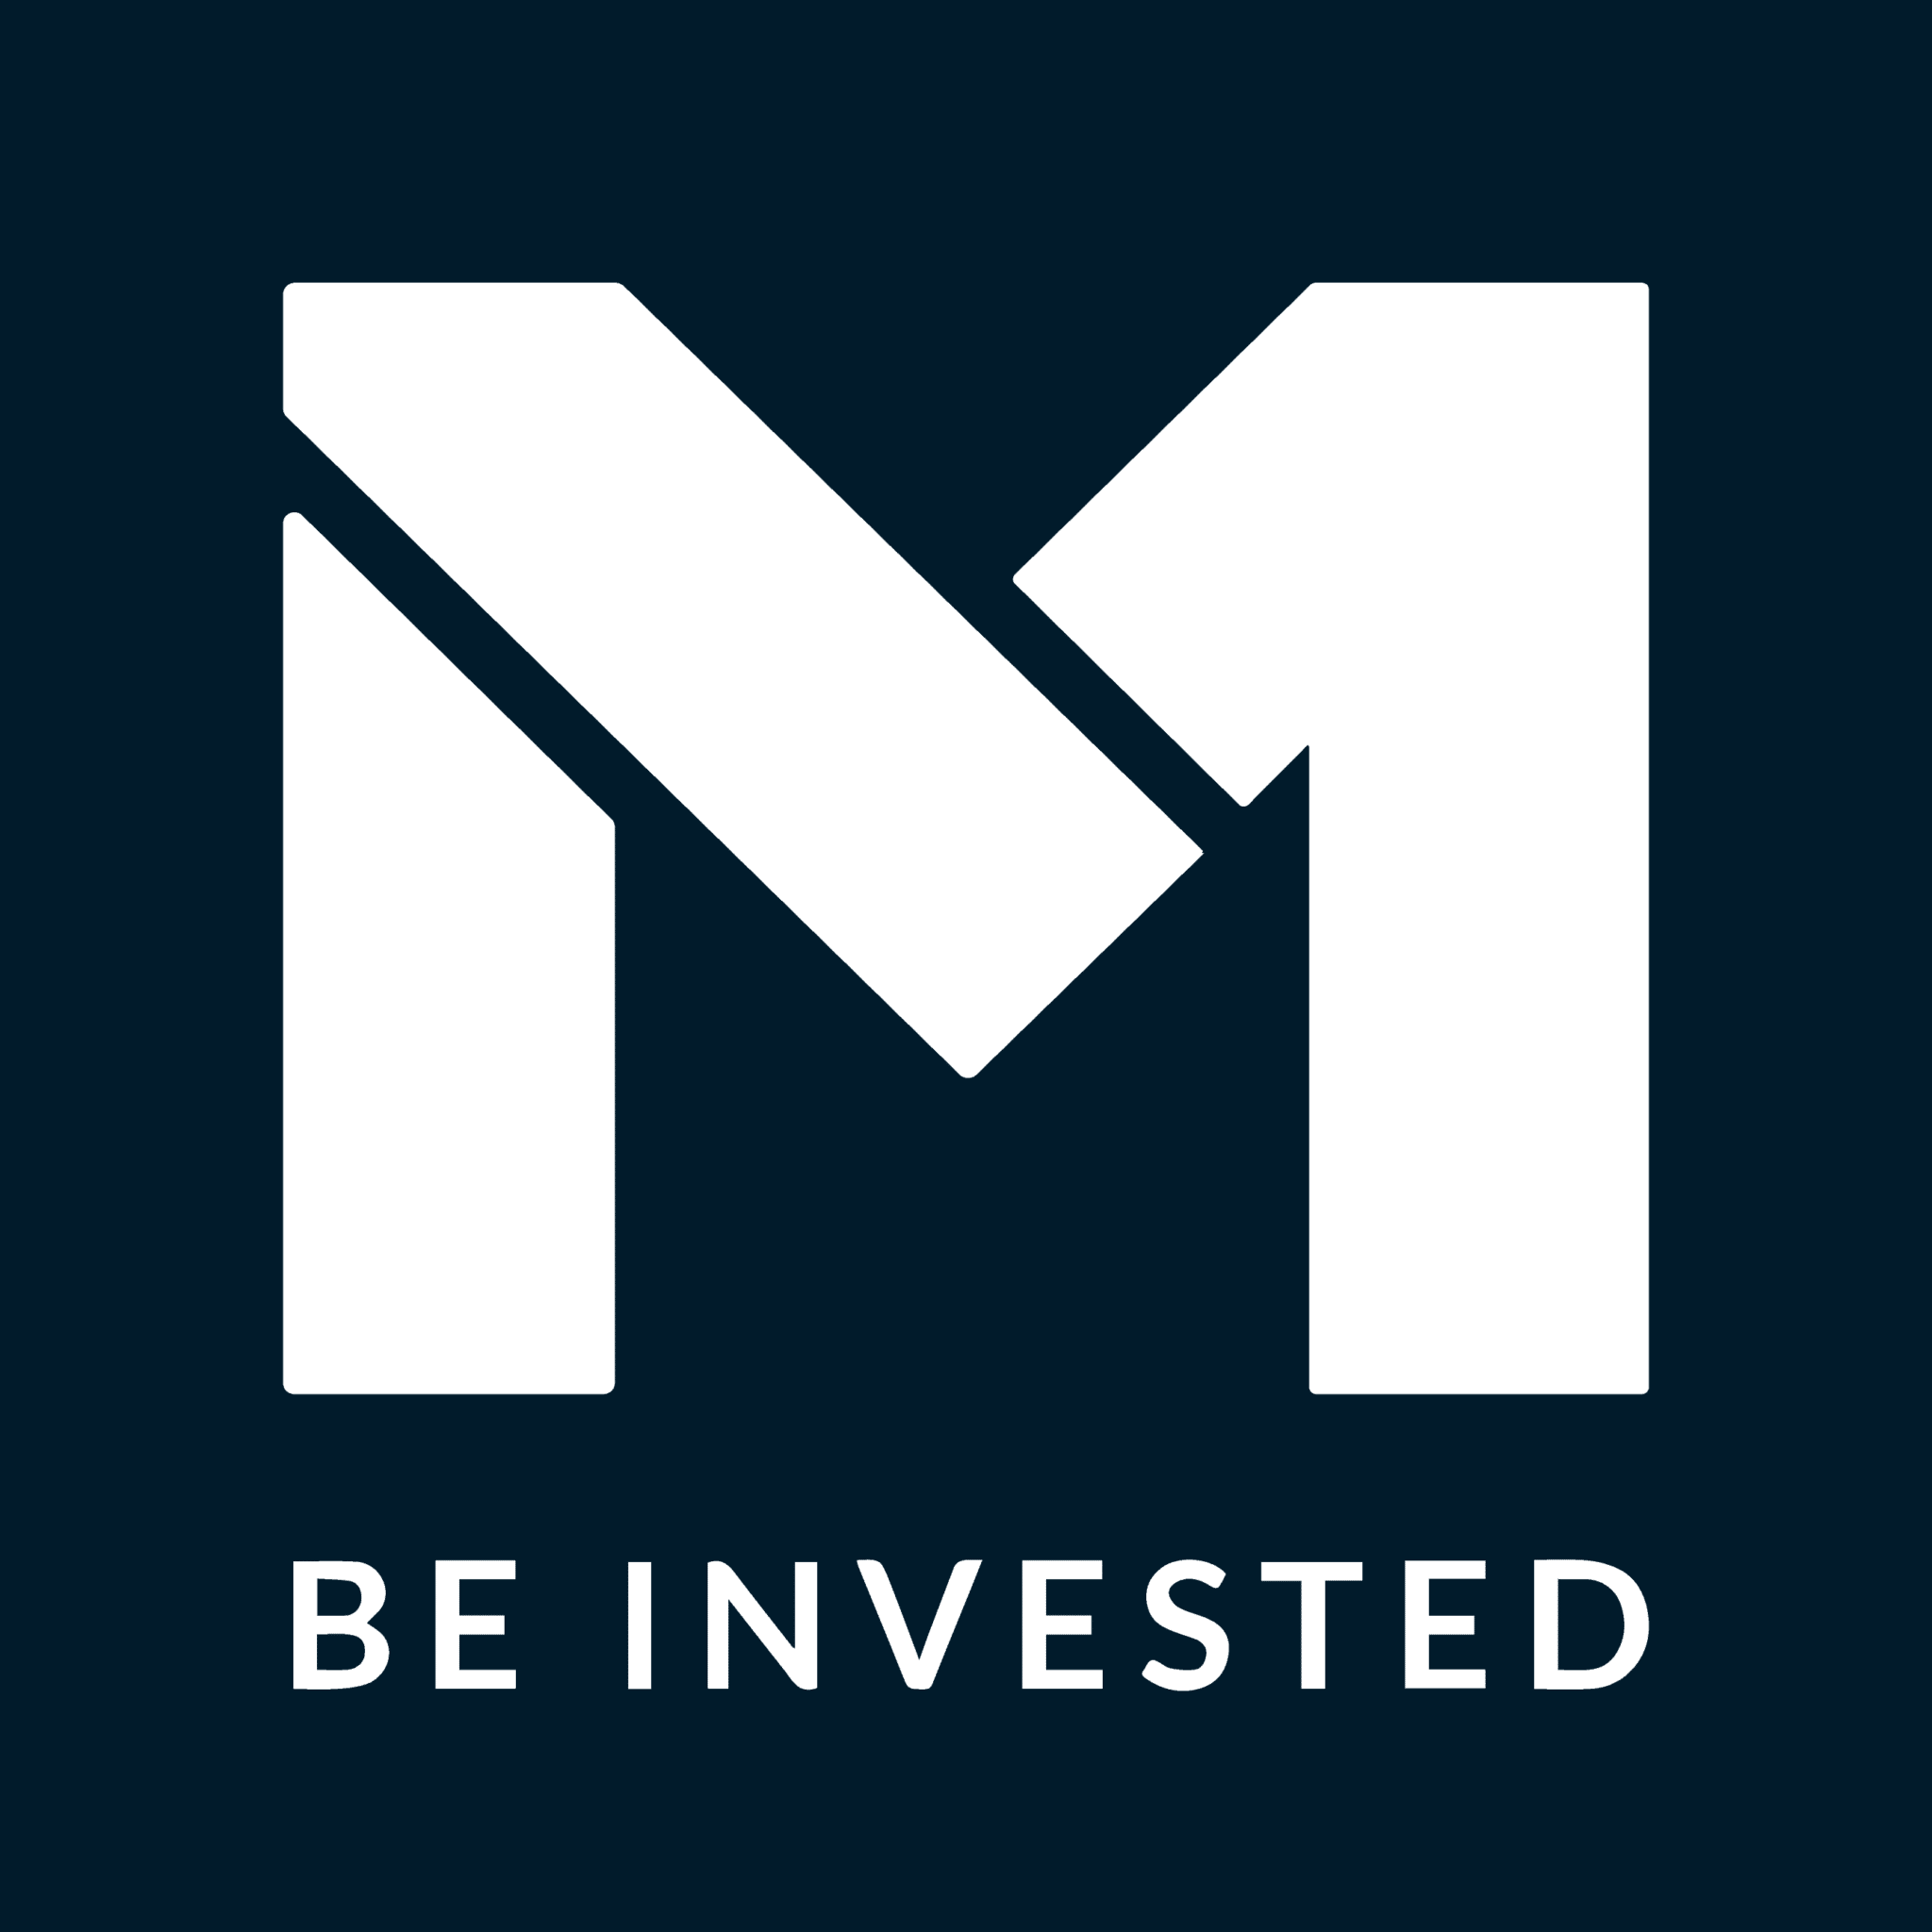 Get $20.00 FREE When you Signup and Invest, learn how to invest